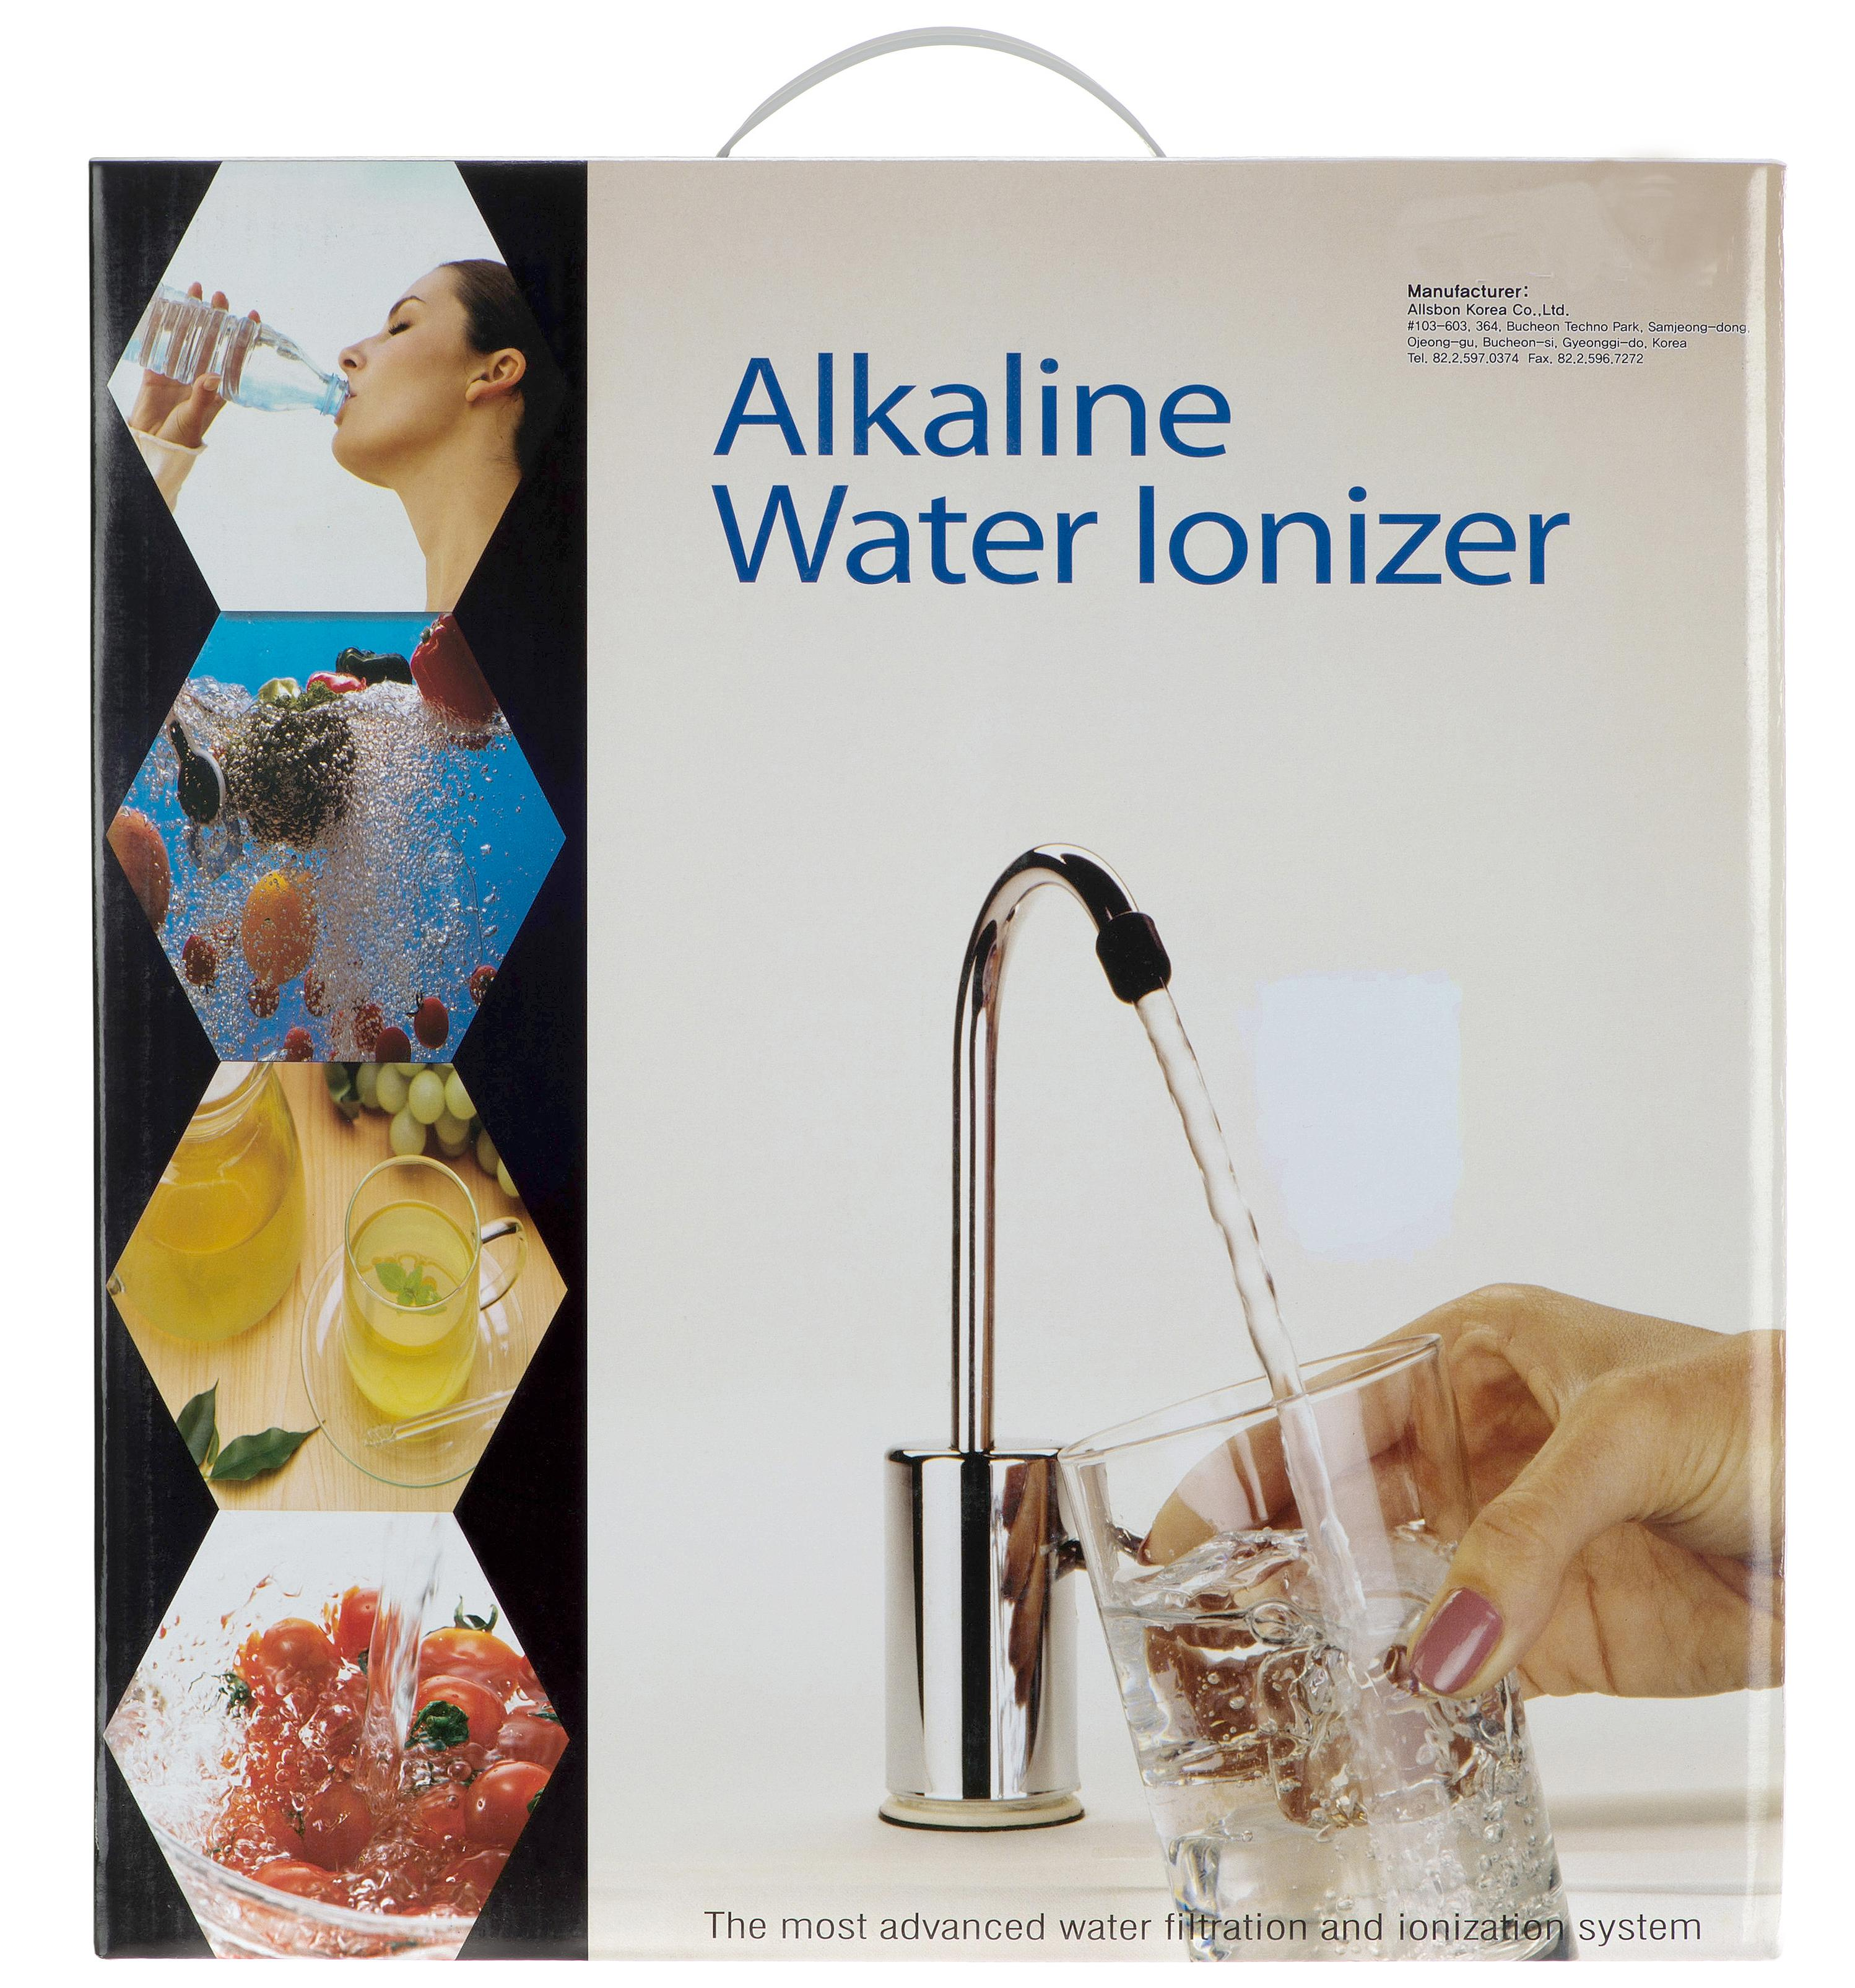 7-plate-water-ionizer-purifier-under-sinktwo-9-level-filters